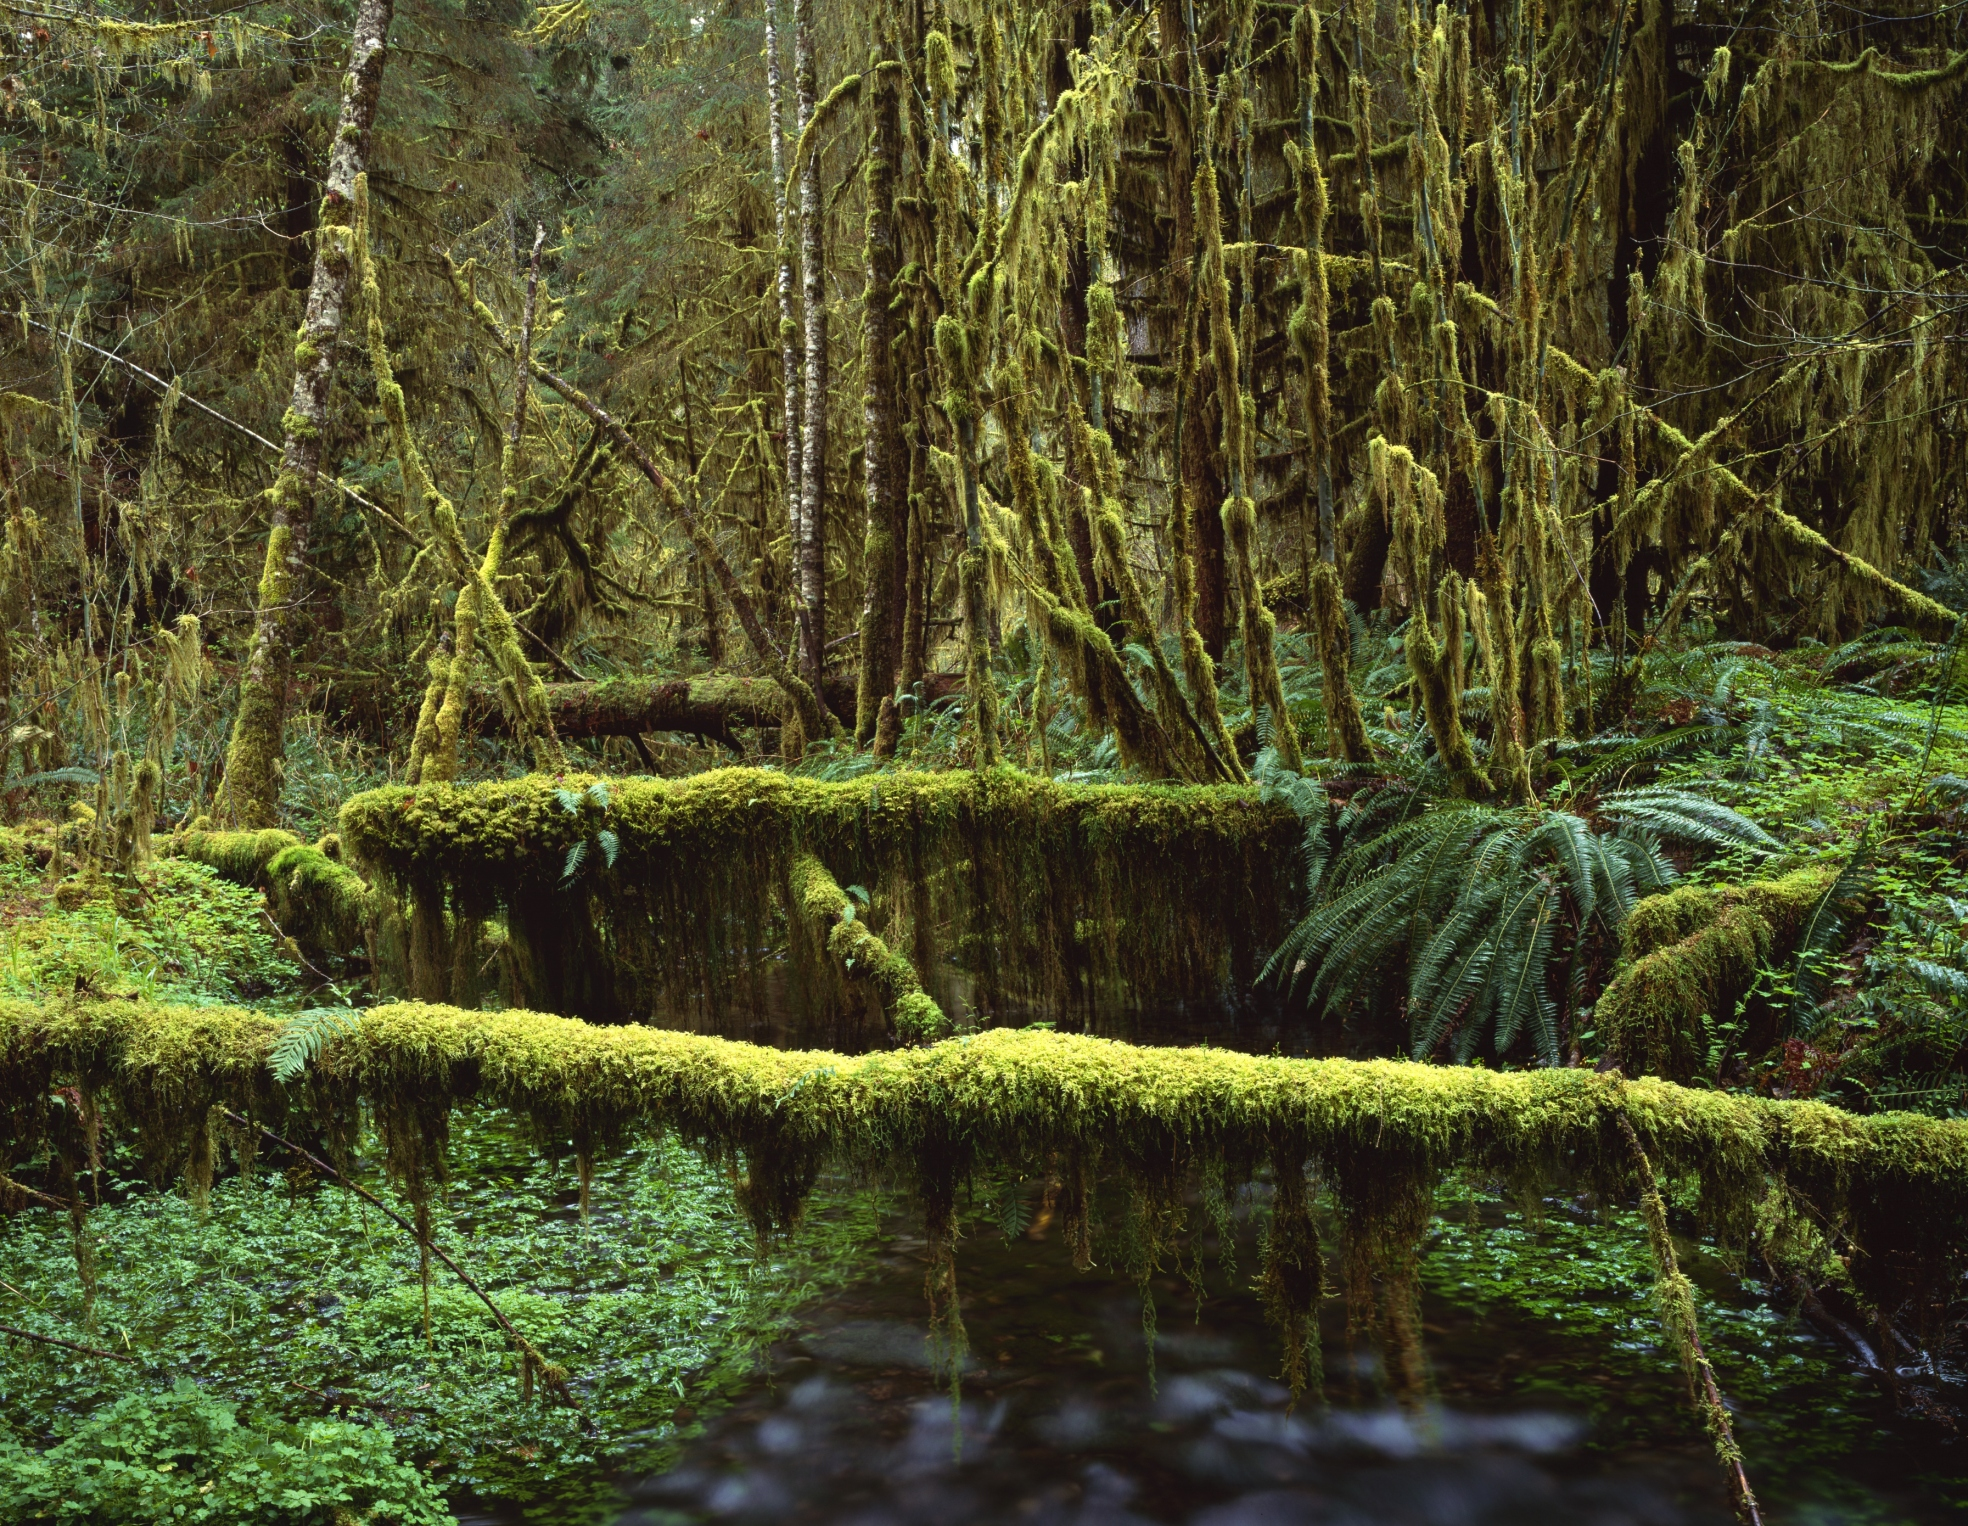 What Plants Live In The Canopy Layer